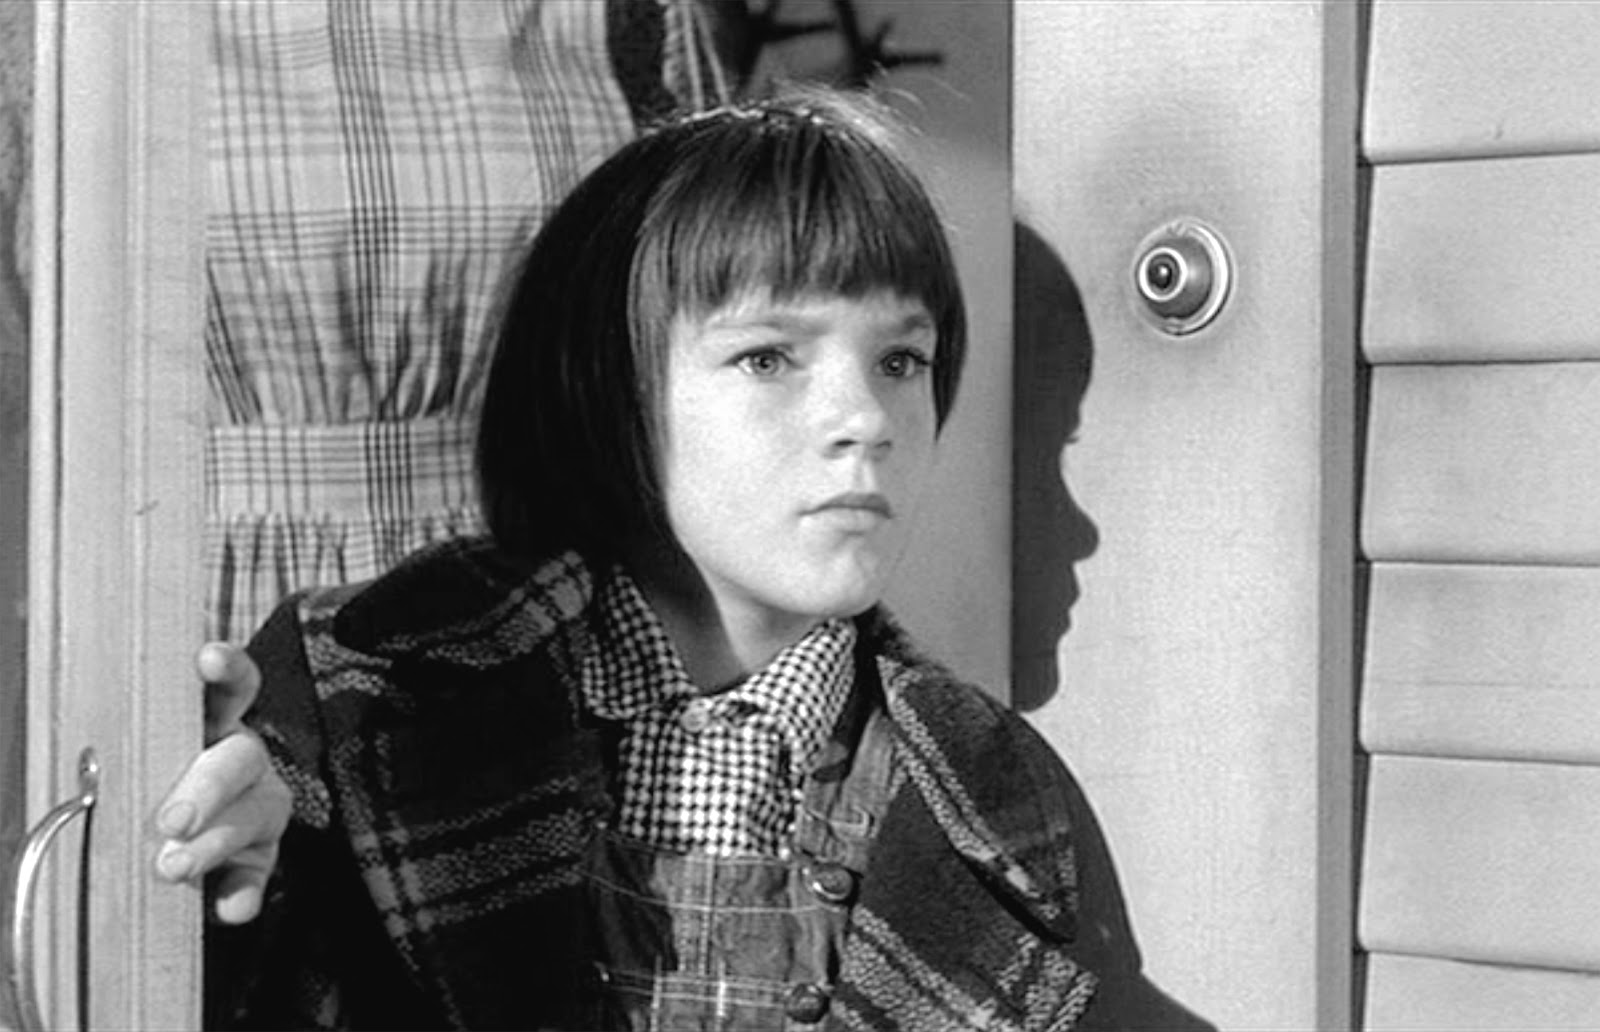 Mary badham as scout the 1963 film of to kill a mockingbird